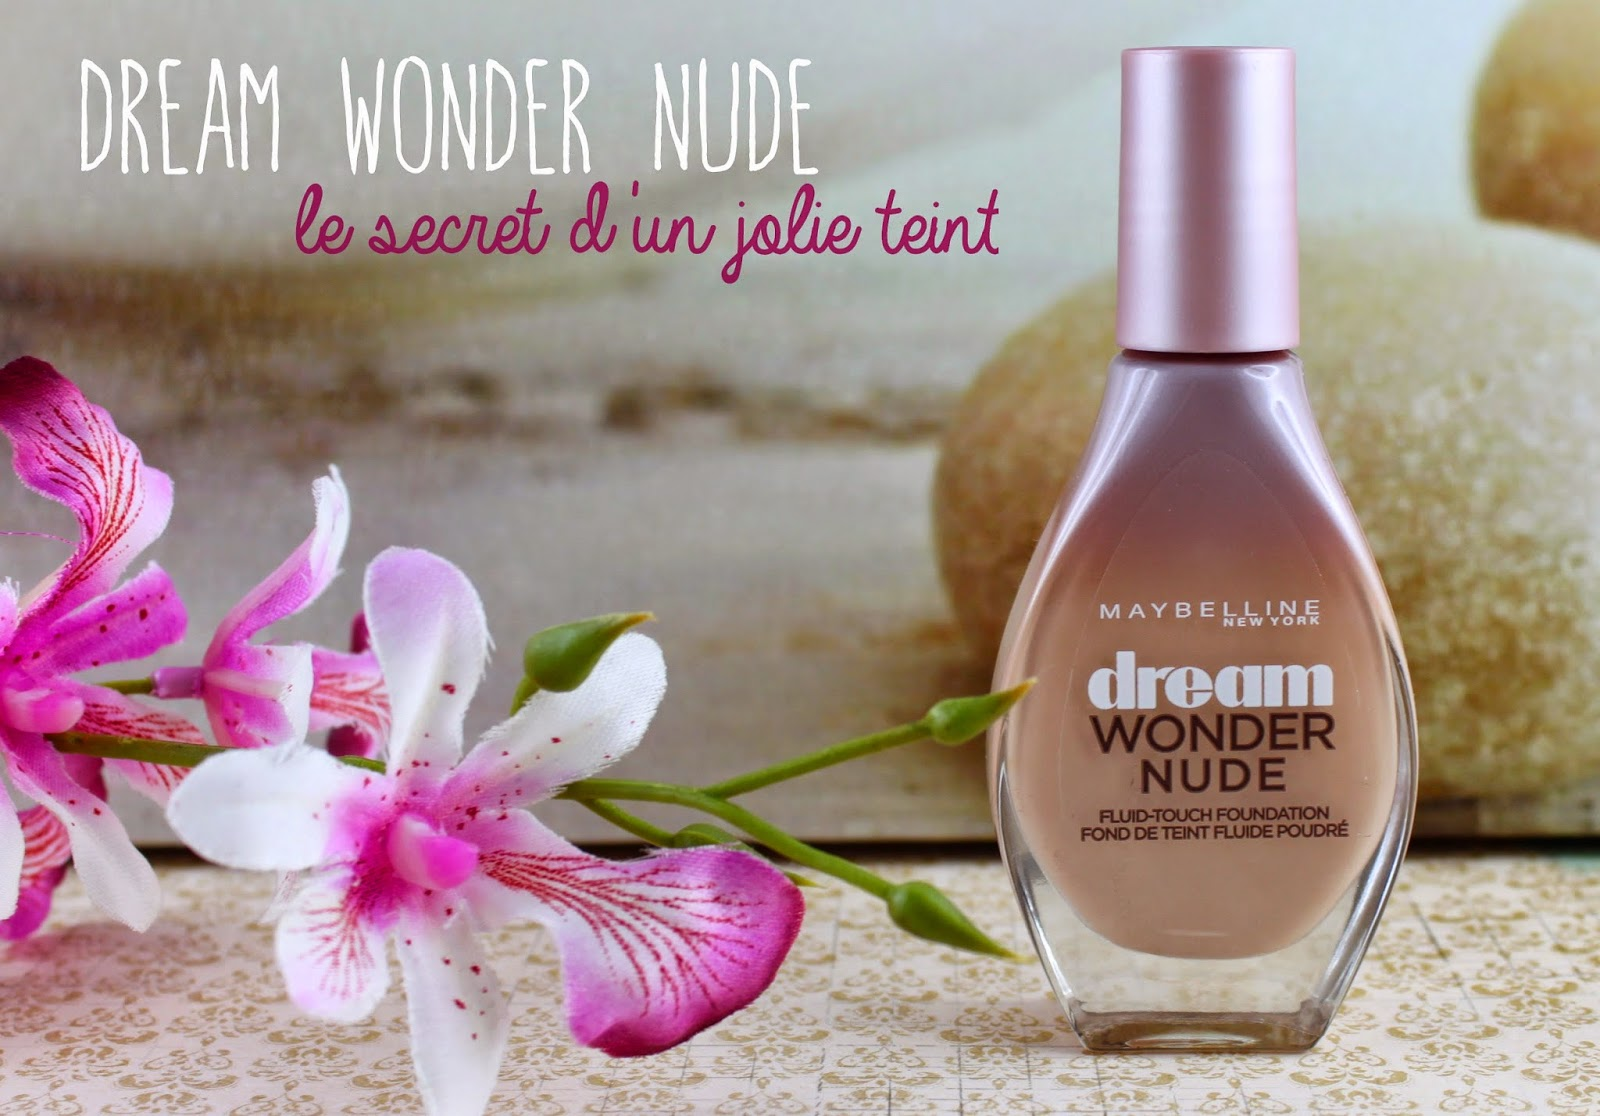 Dream Wonder Nude de Maybelline, le secret d'un jolie teint